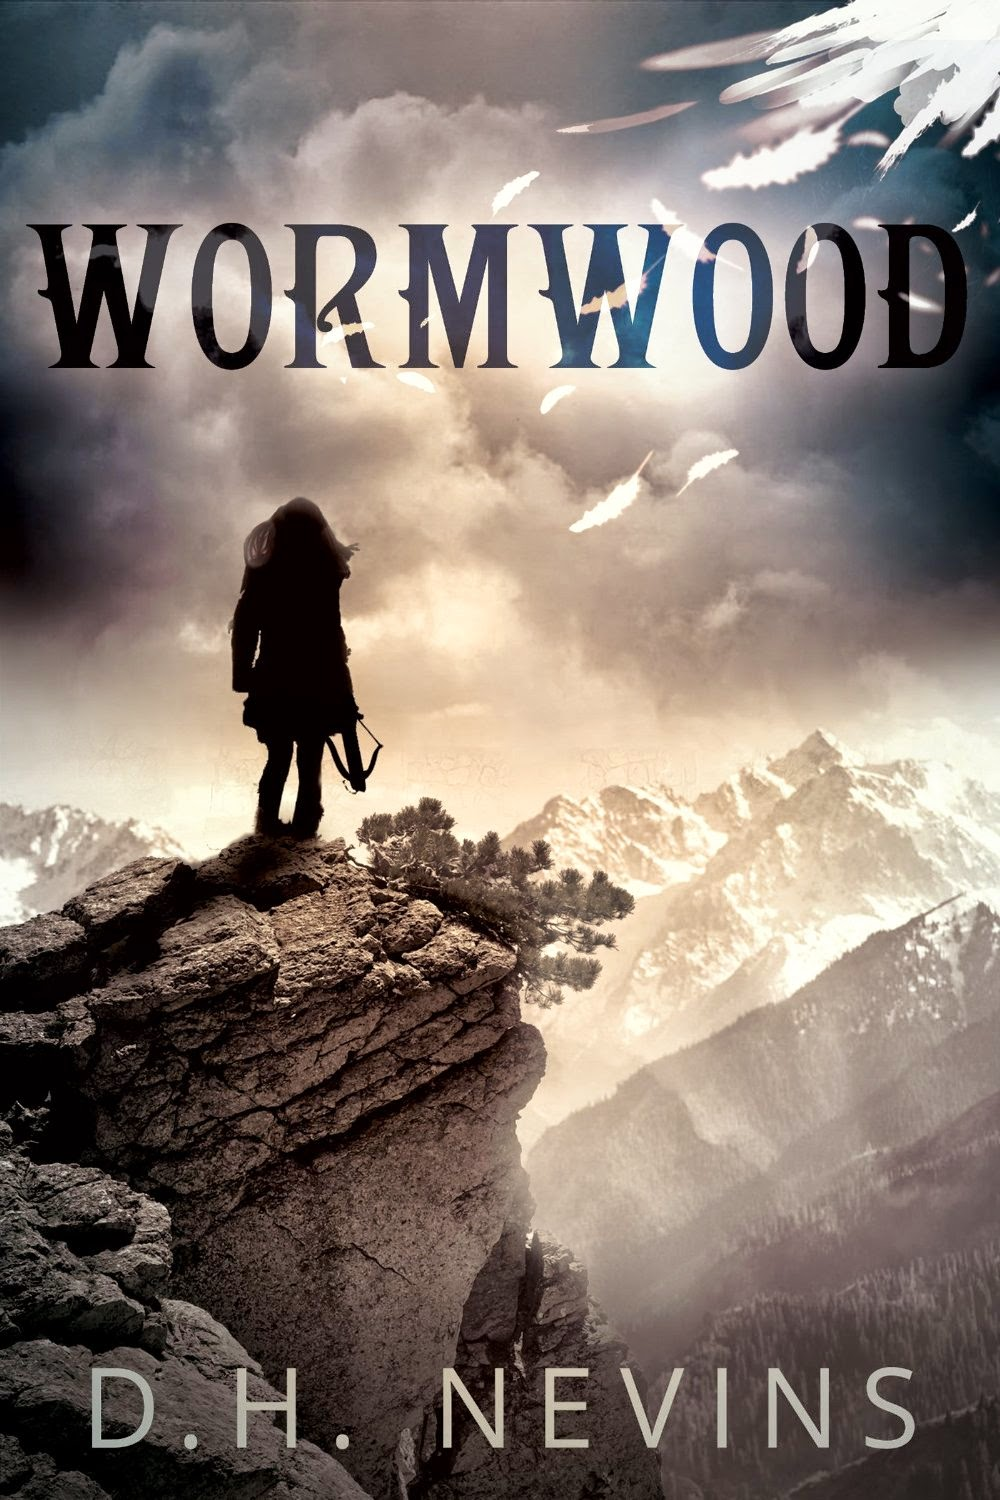 http://www.amazon.com/Wormwood-D-H-Nevins-ebook/dp/B005V55BQM/ref=asap_B0087HSK5K_1_1?s=books&ie=UTF8&qid=1414158781&sr=1-1